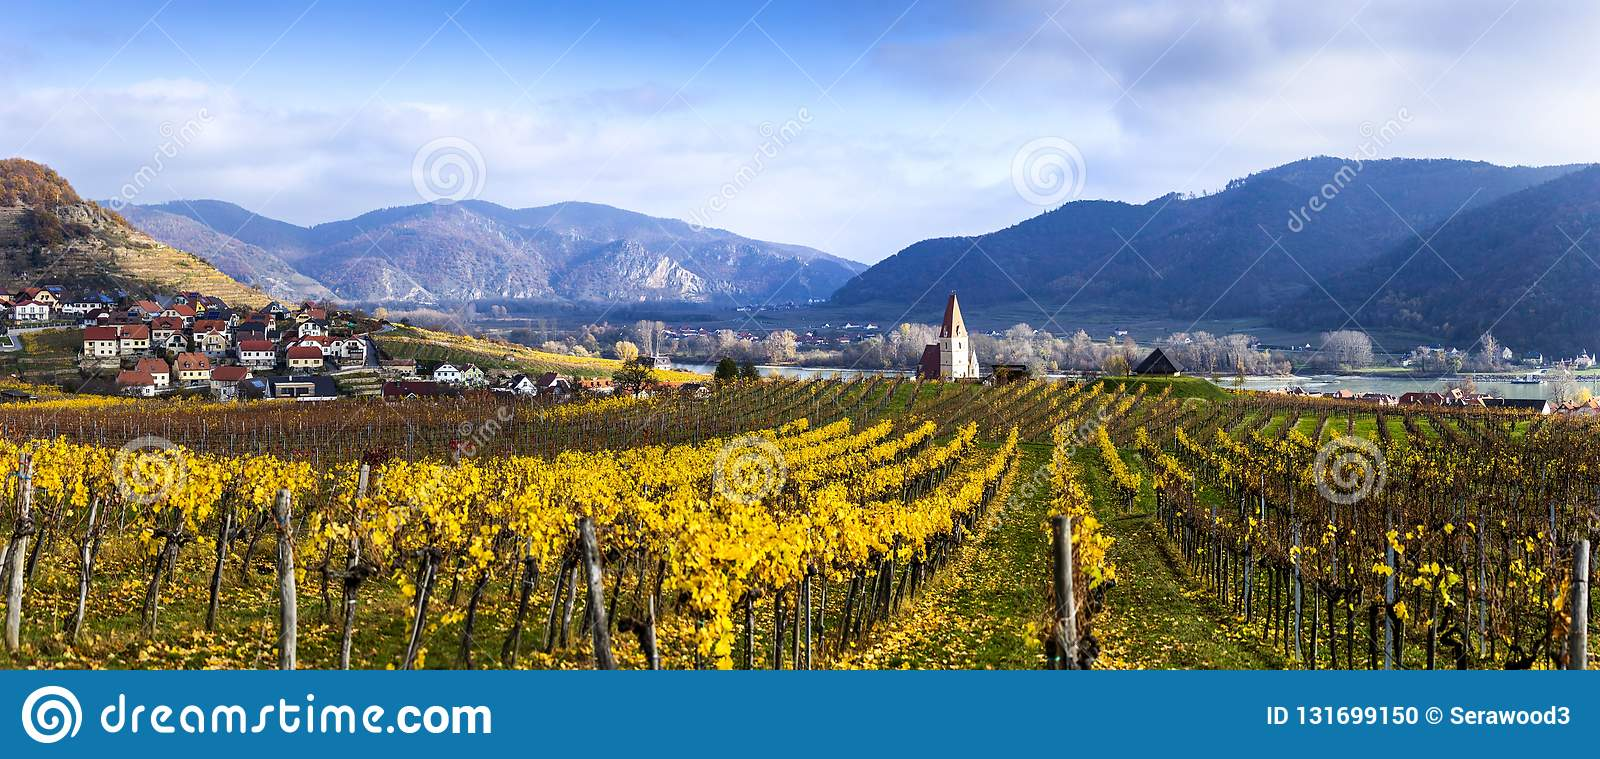 Panorama of Weissenkirchen. Wachau valley. Lower Austria. Autumn colored leaves and vineyards.